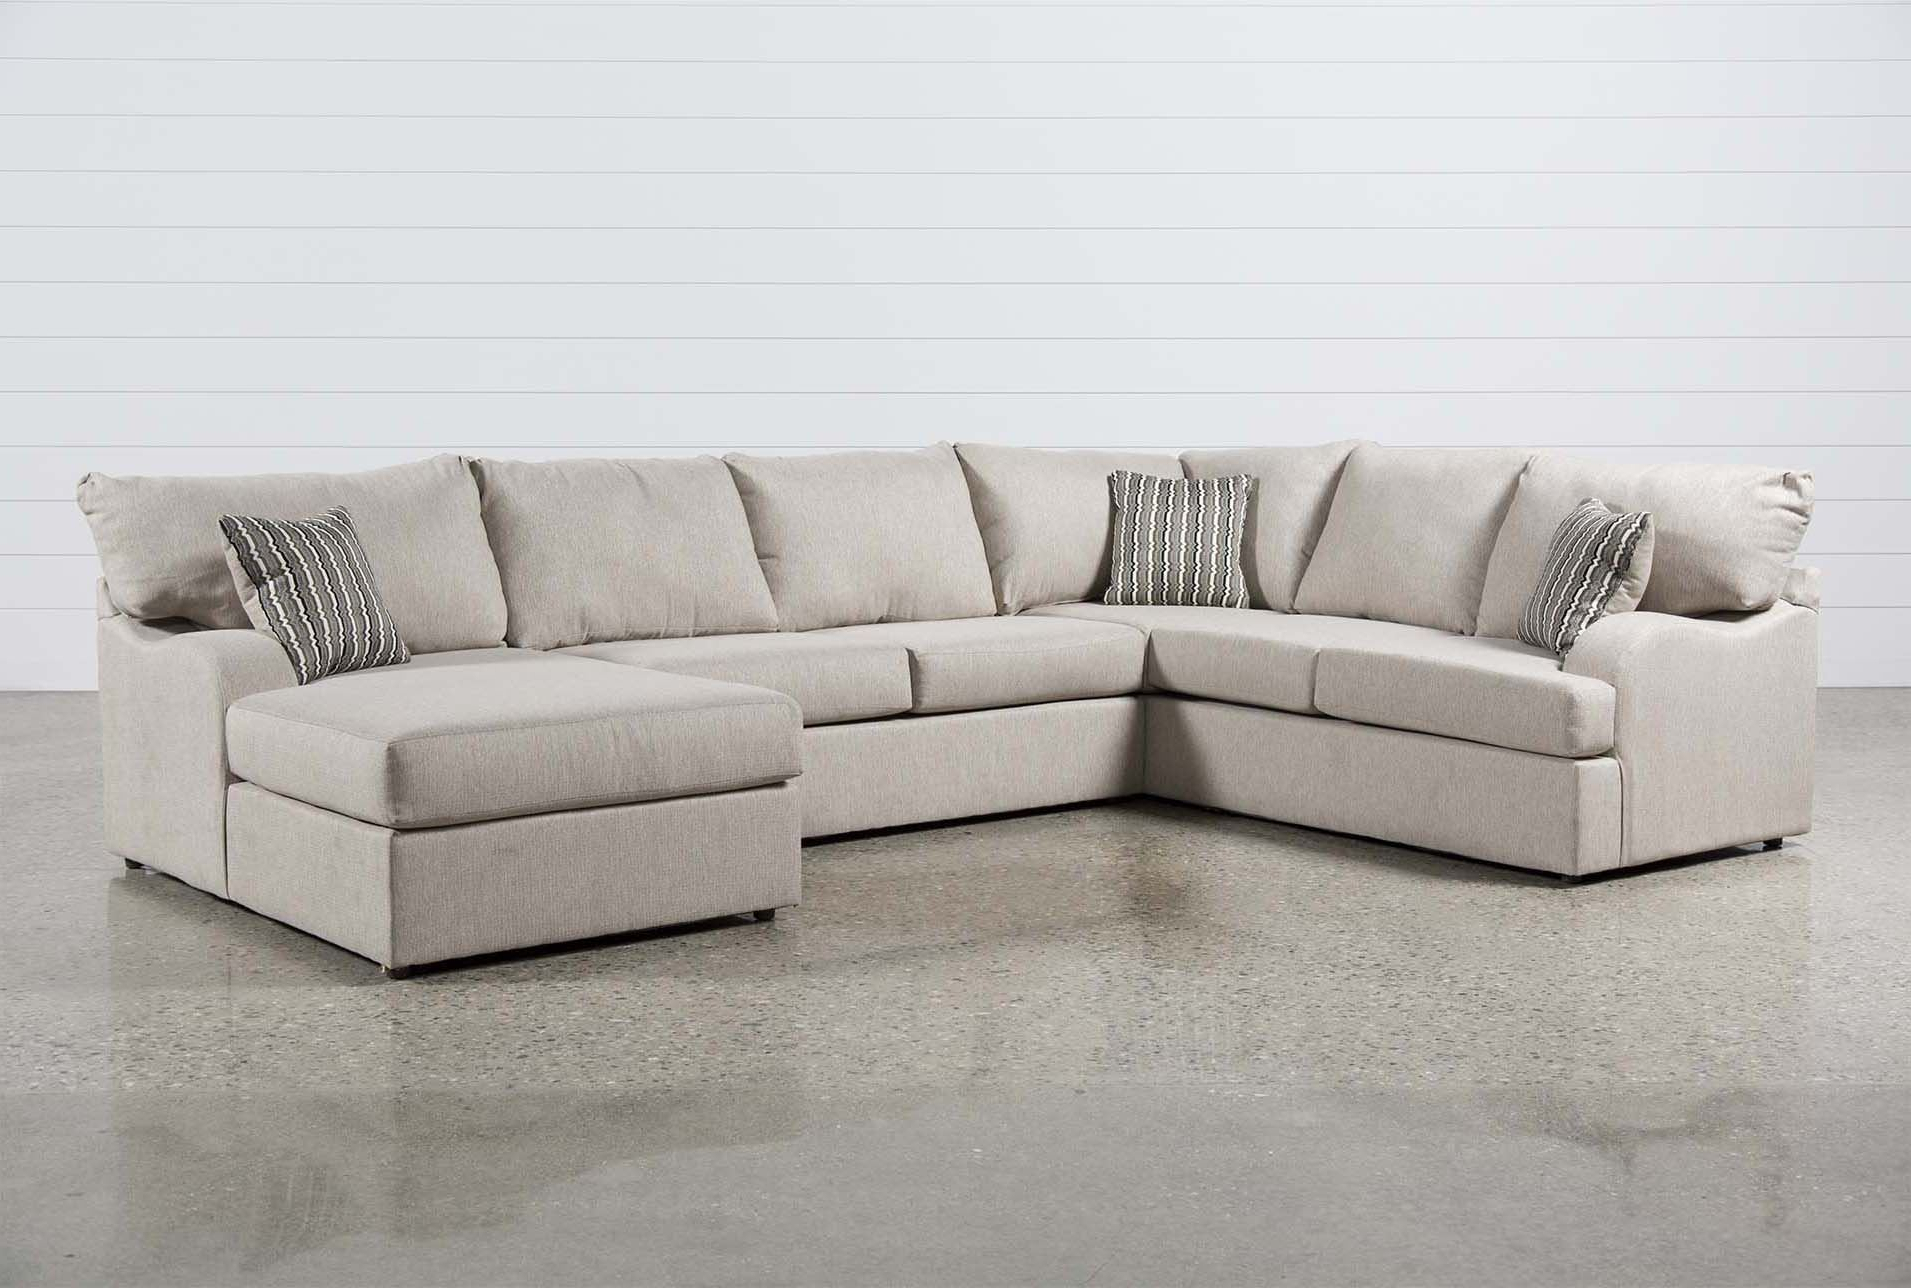 Ideas Of Raf Chaise For Aspen 2 Piece Sectional W Raf Chaise Living Pertaining To Best And Newest Aspen 2 Piece Sectionals With Raf Chaise (View 11 of 20)